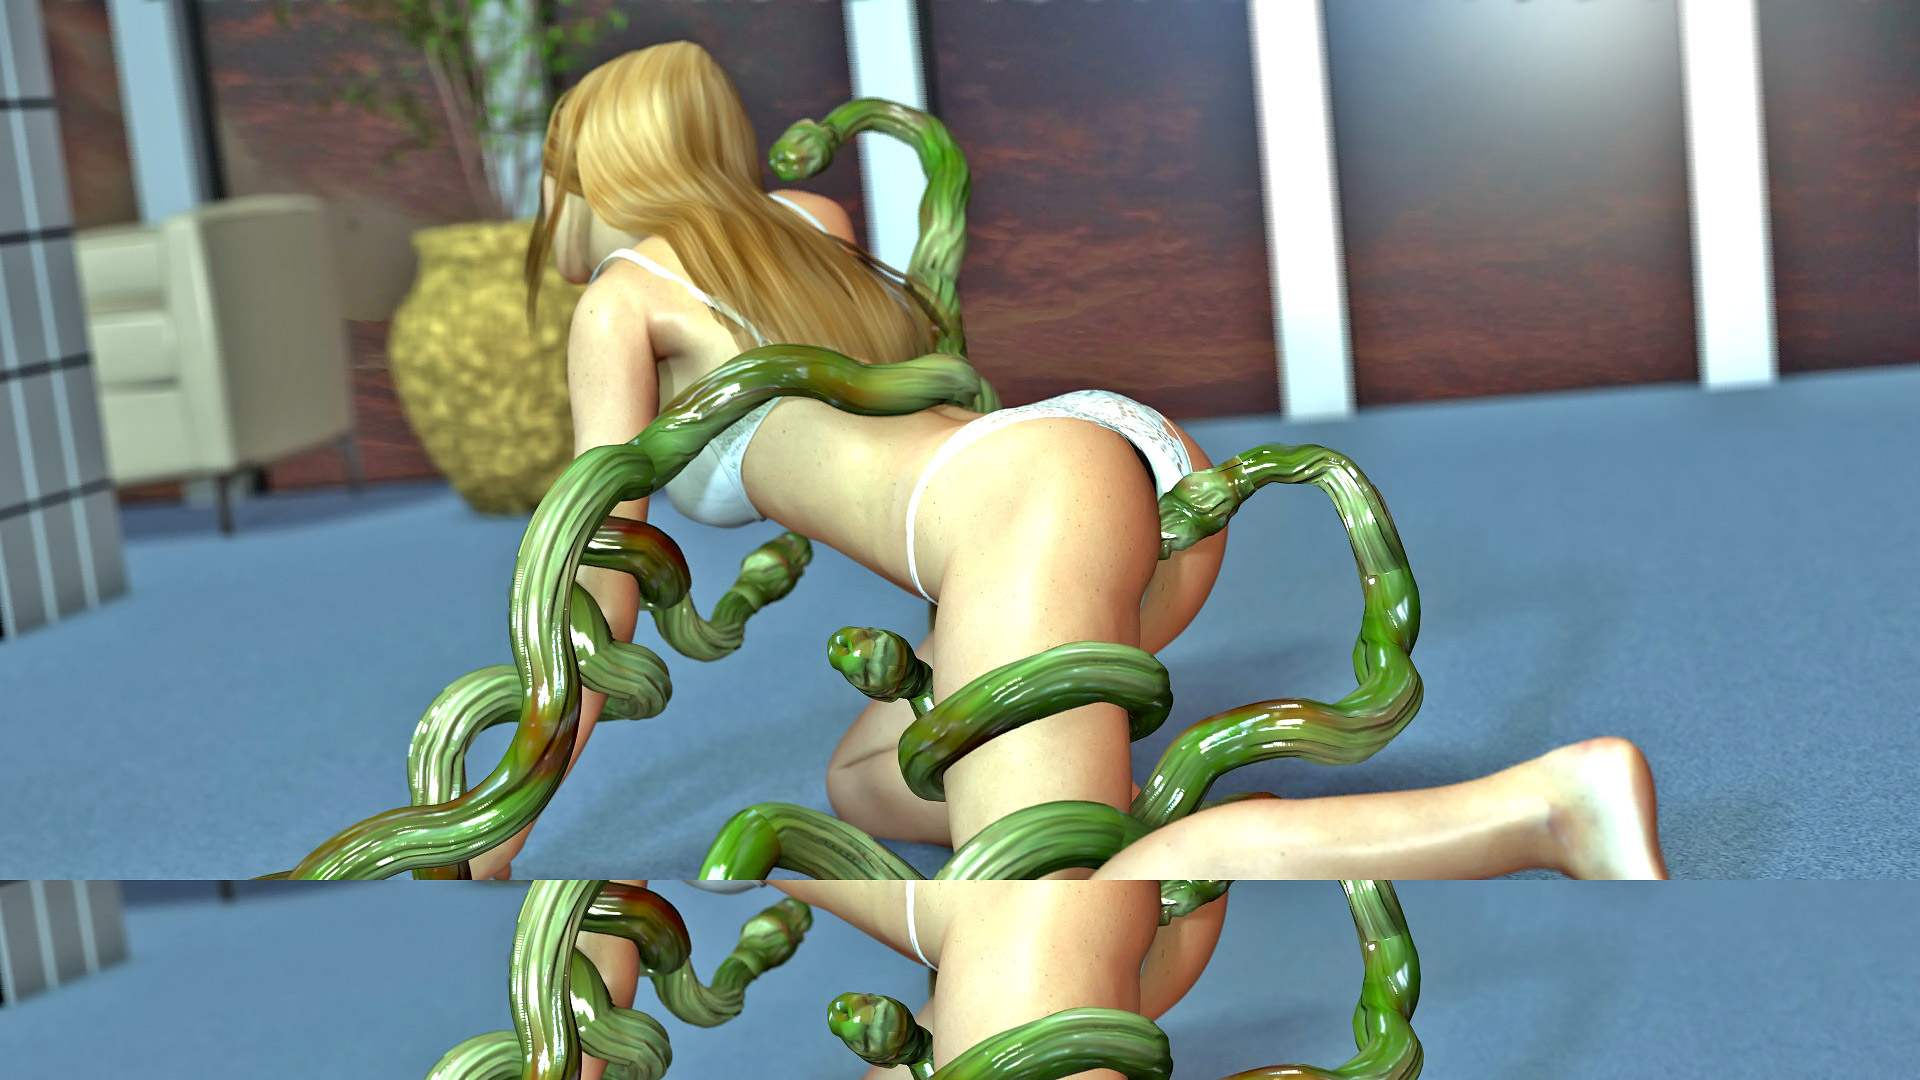 3d Sex Toons Pics Tentacle Galleries Games Toons Scj Dmonstersex ...: www.iluvtoons.com/3d-sex-toons-pics/138923.html